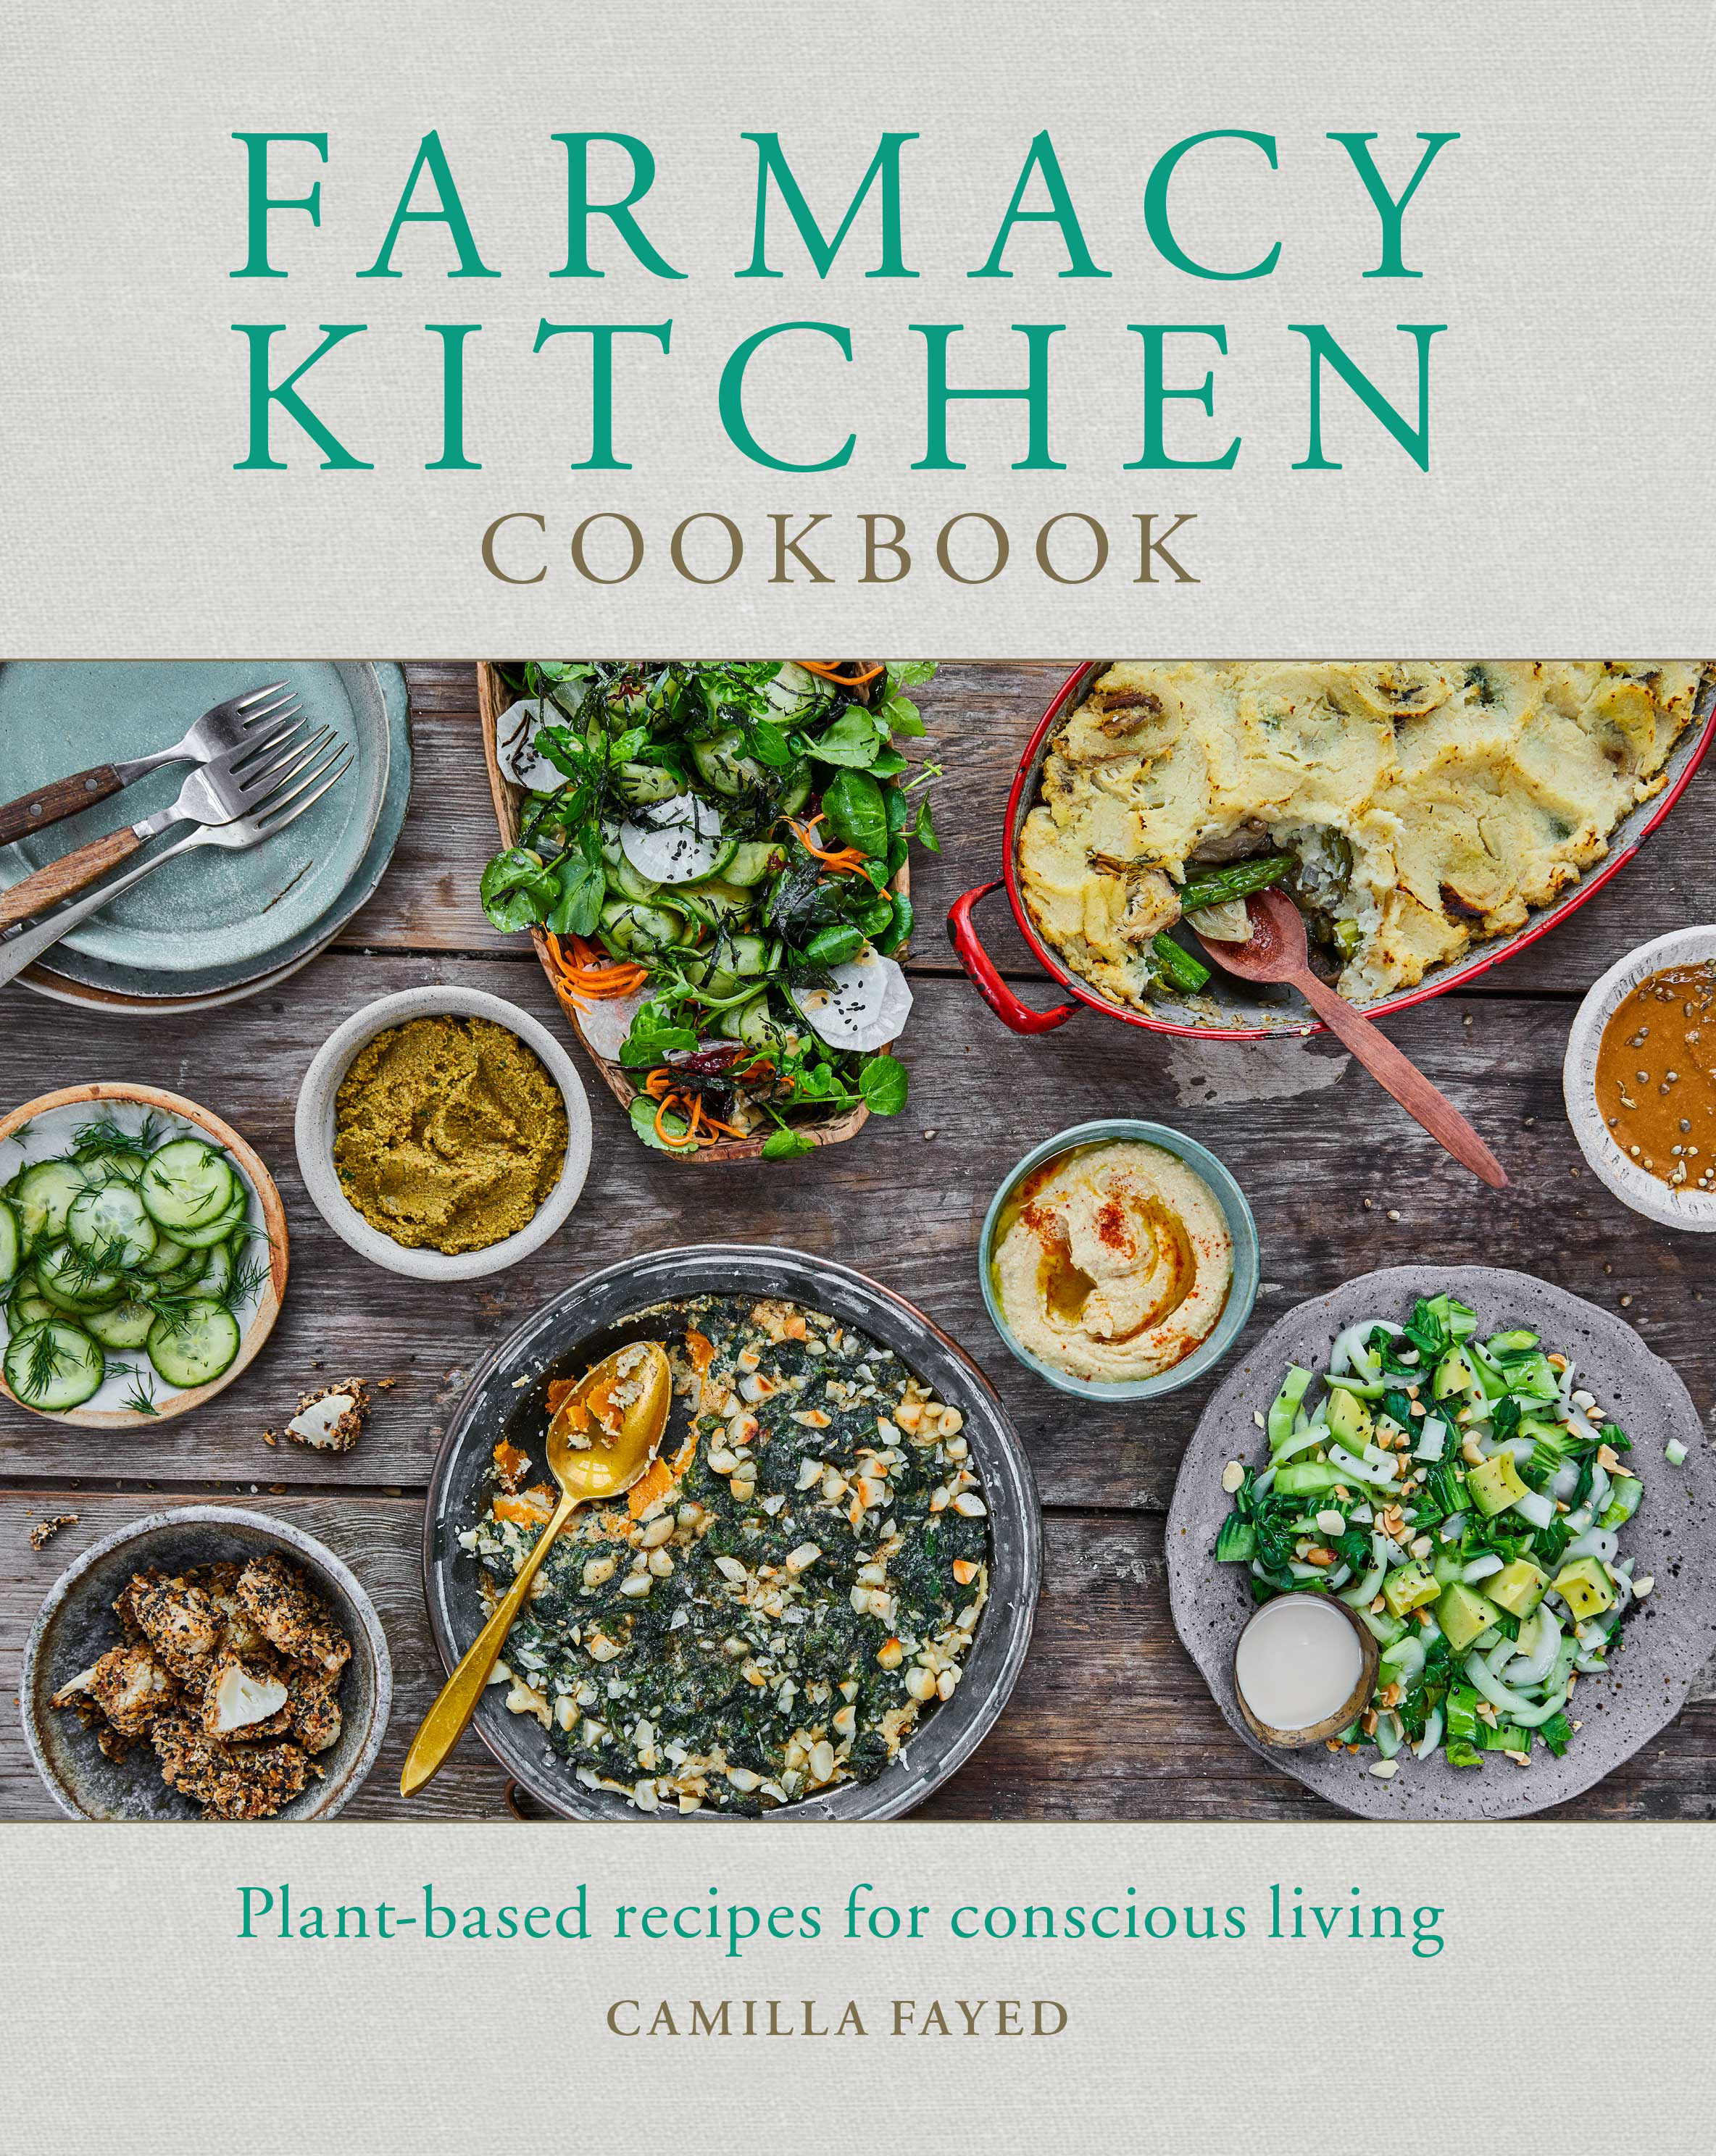 Farmacy KitchenPlant-based recipes for a conscious way of life